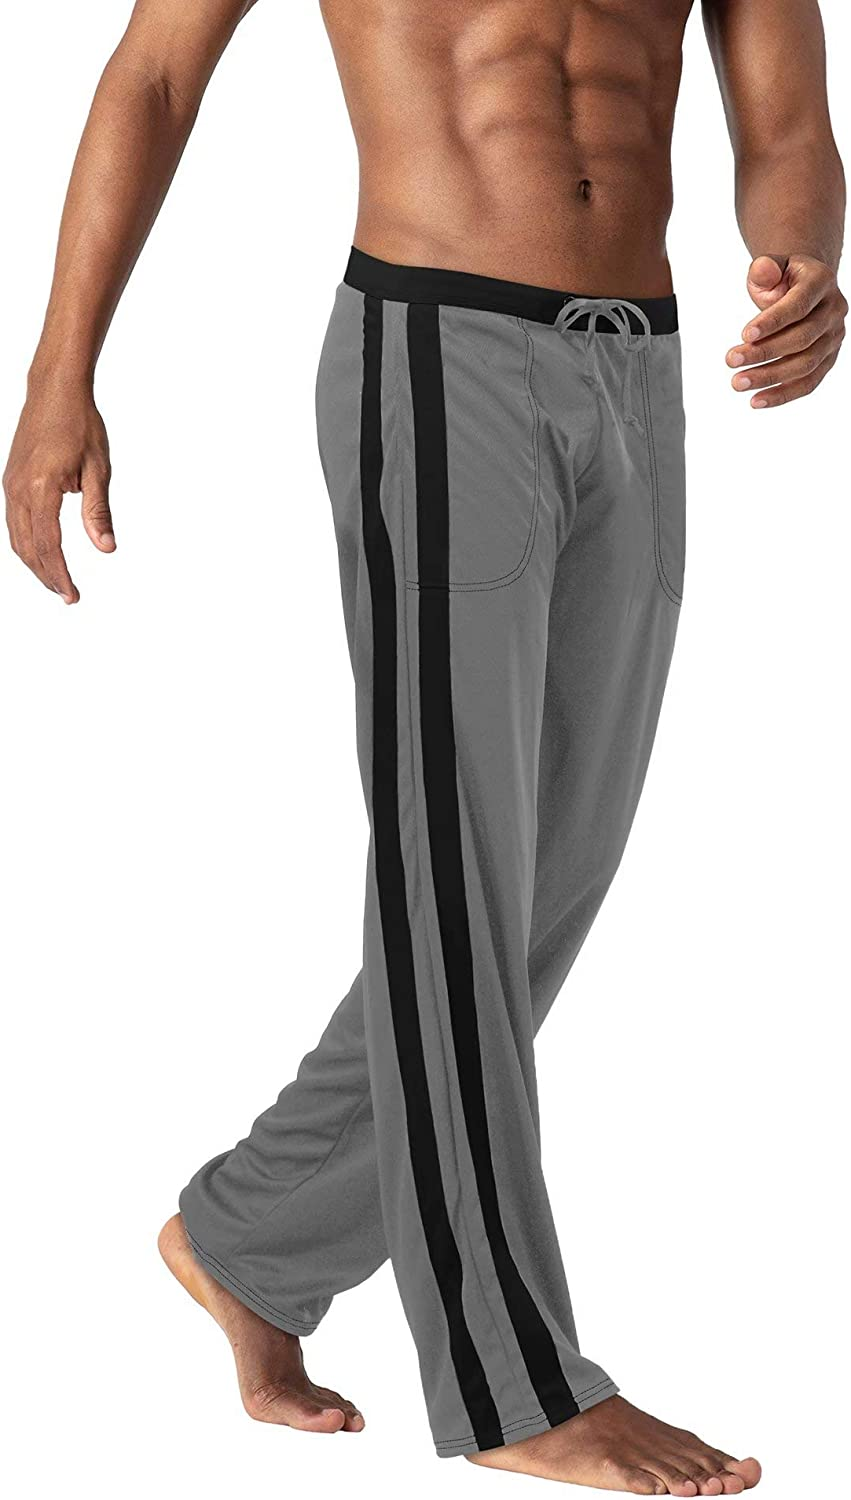 BIYLACLESEN Men's Running Pants Lightweight Quick Max Some reservation 86% OFF Loose Fit Dry